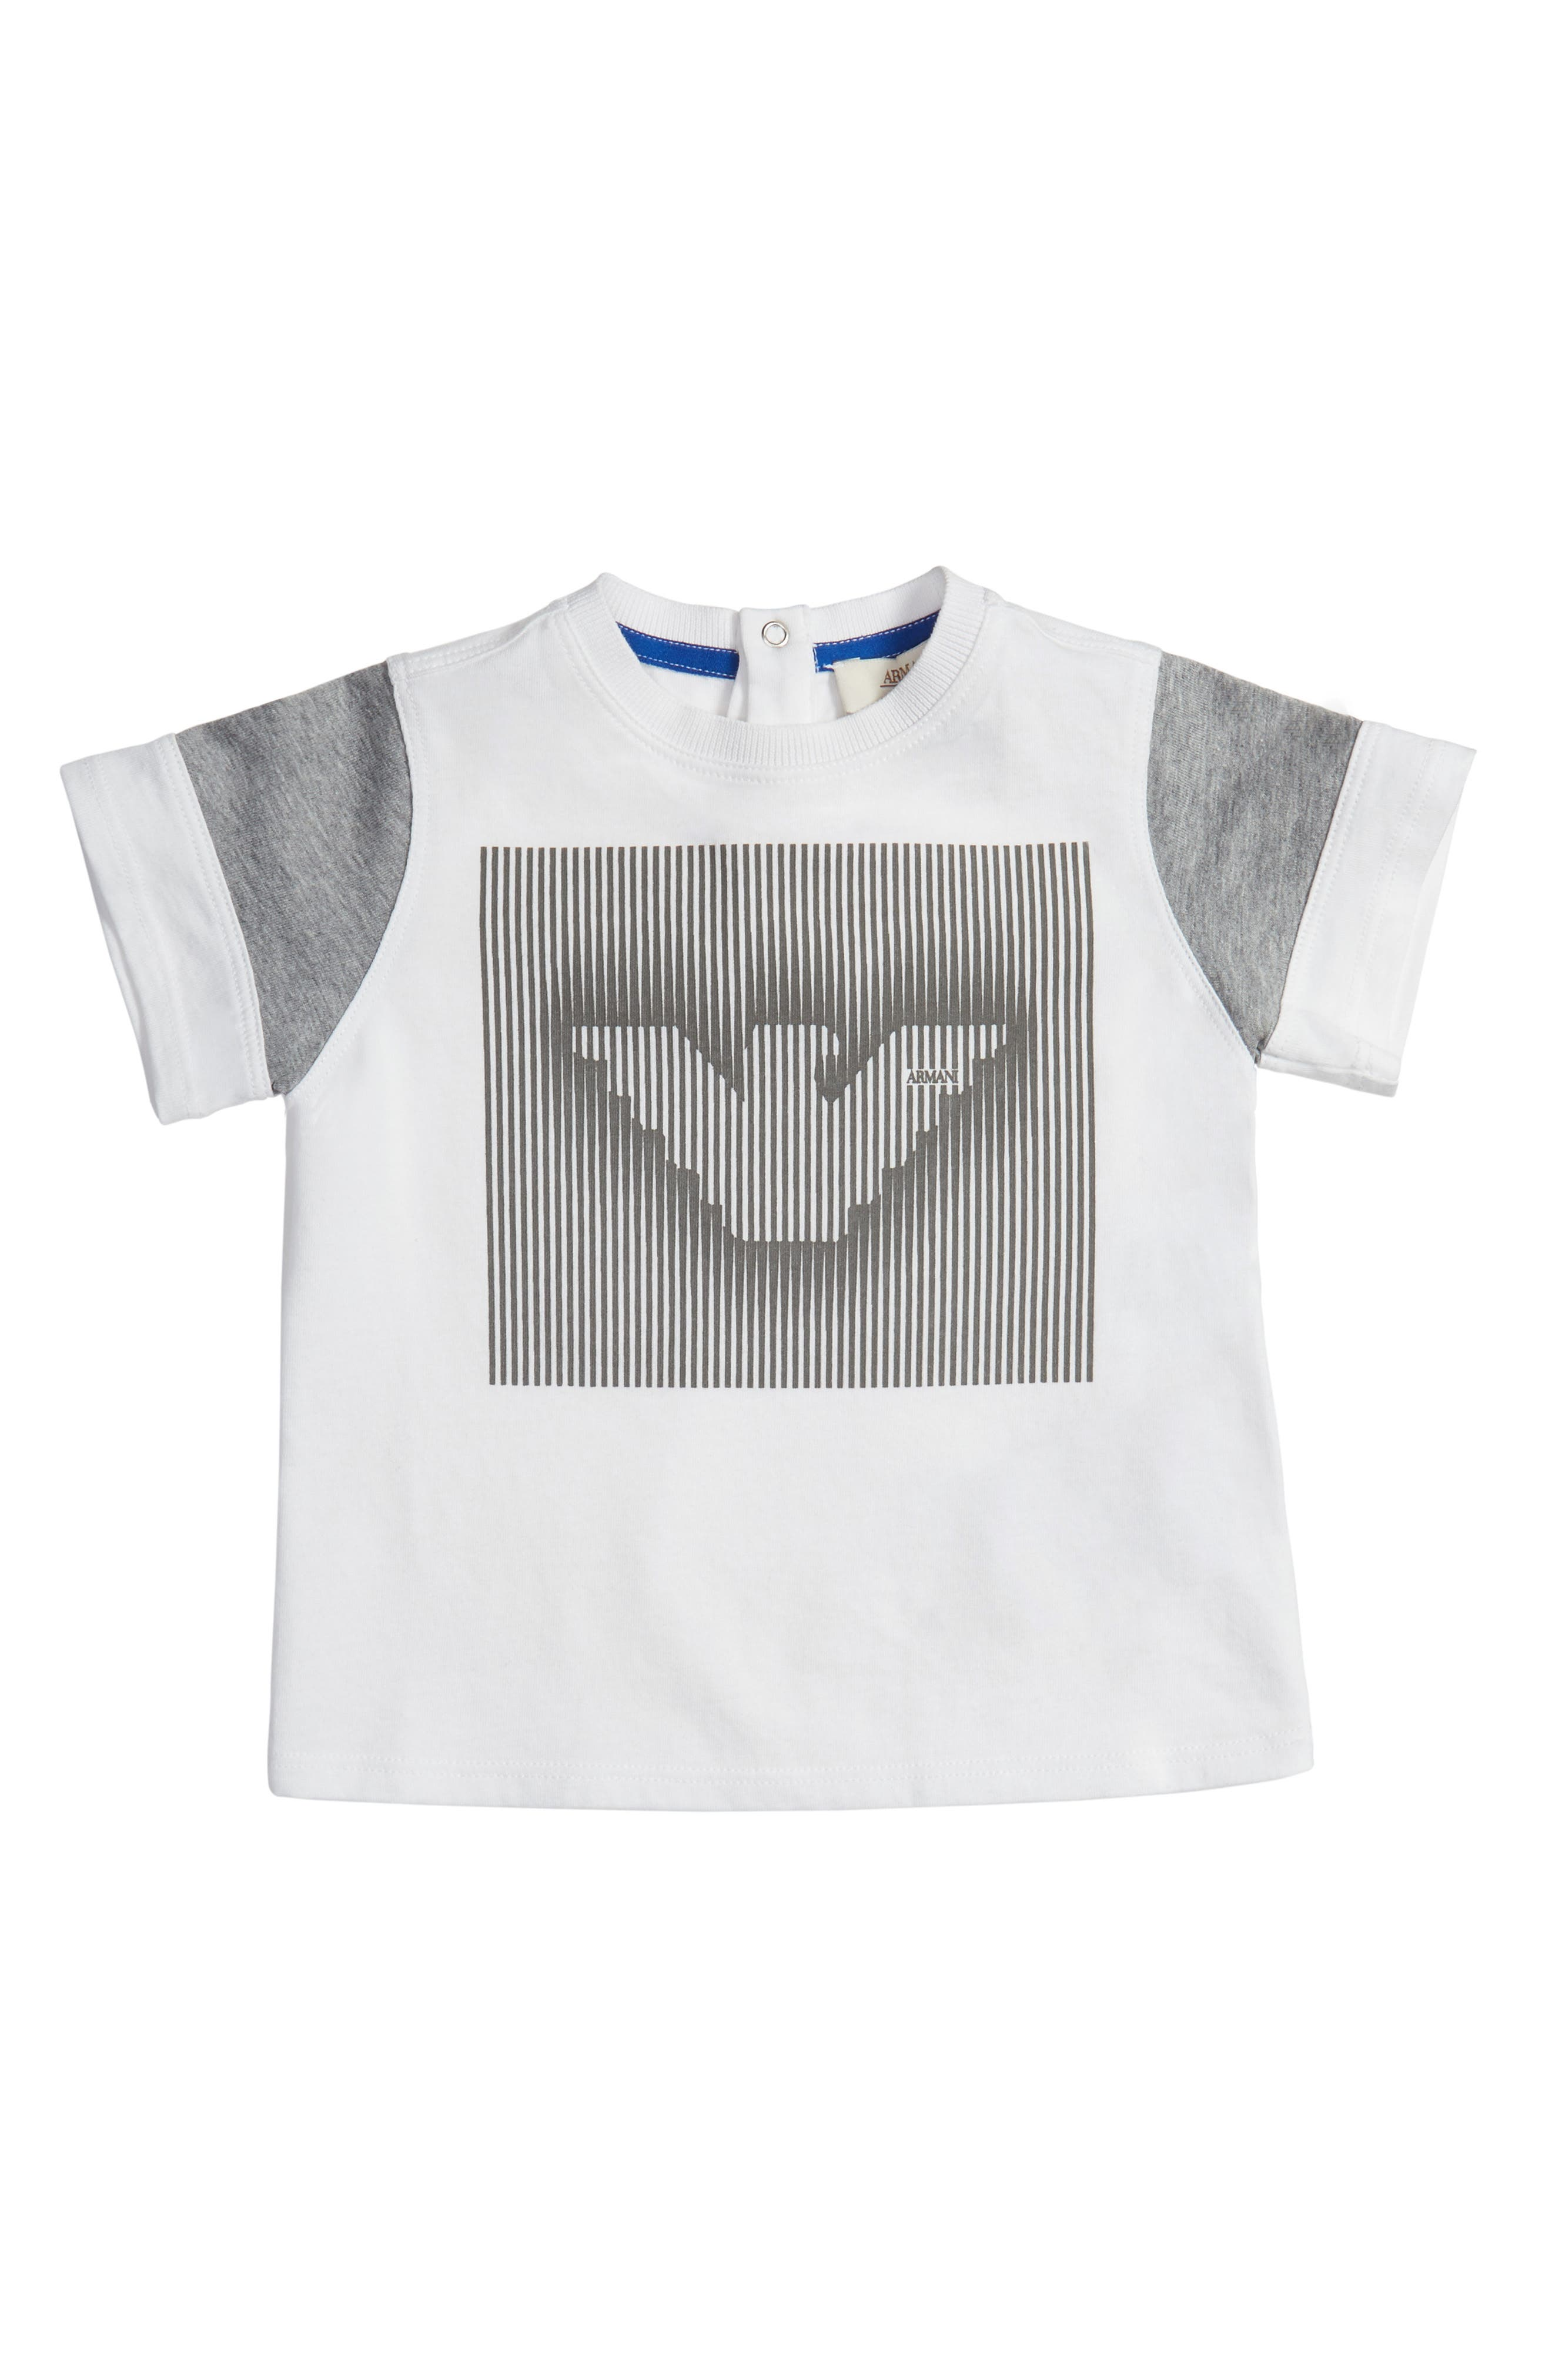 Alternate Image 1 Selected - Armani Junior Logo Graphic T-Shirt (Baby Boys)